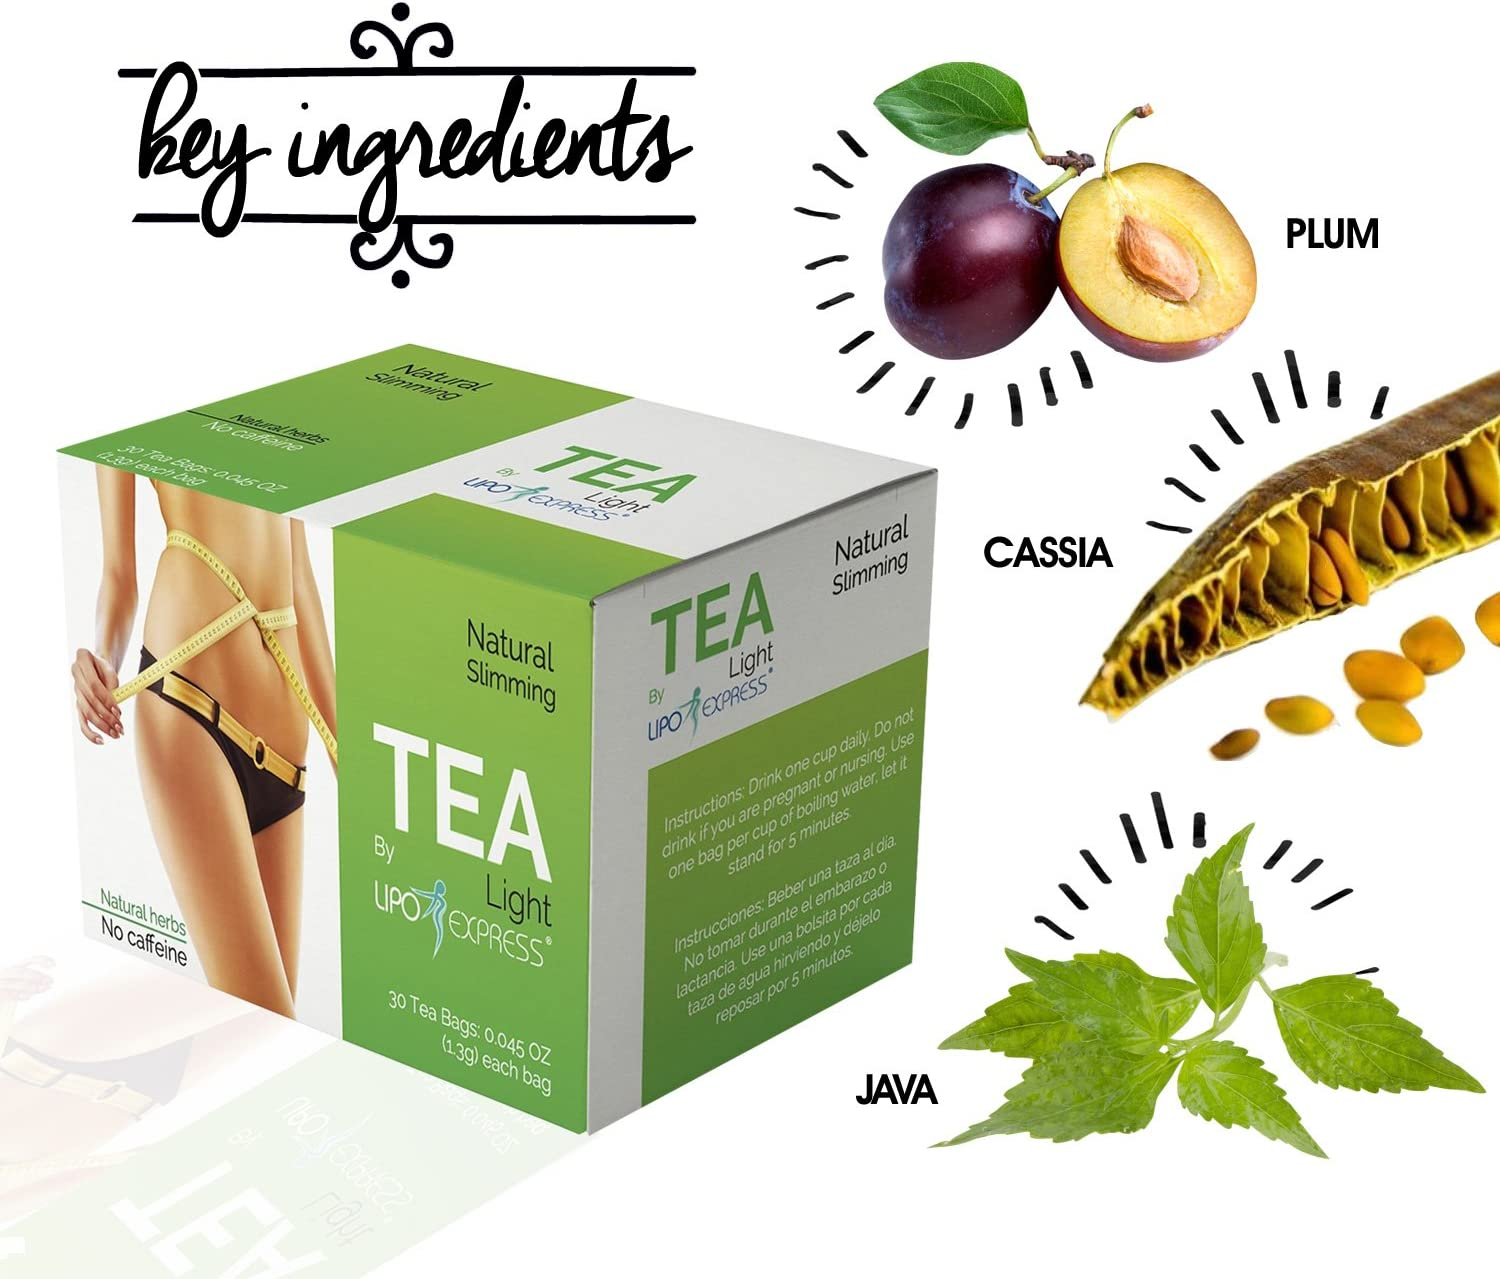 Weight Loss Tea Detox Tea Lipo Express Body Cleanse, Reduce Bloating, & Appetite Suppressant, 30 Day Tea-tox, with Potent Traditional 100% Naturals Herbs